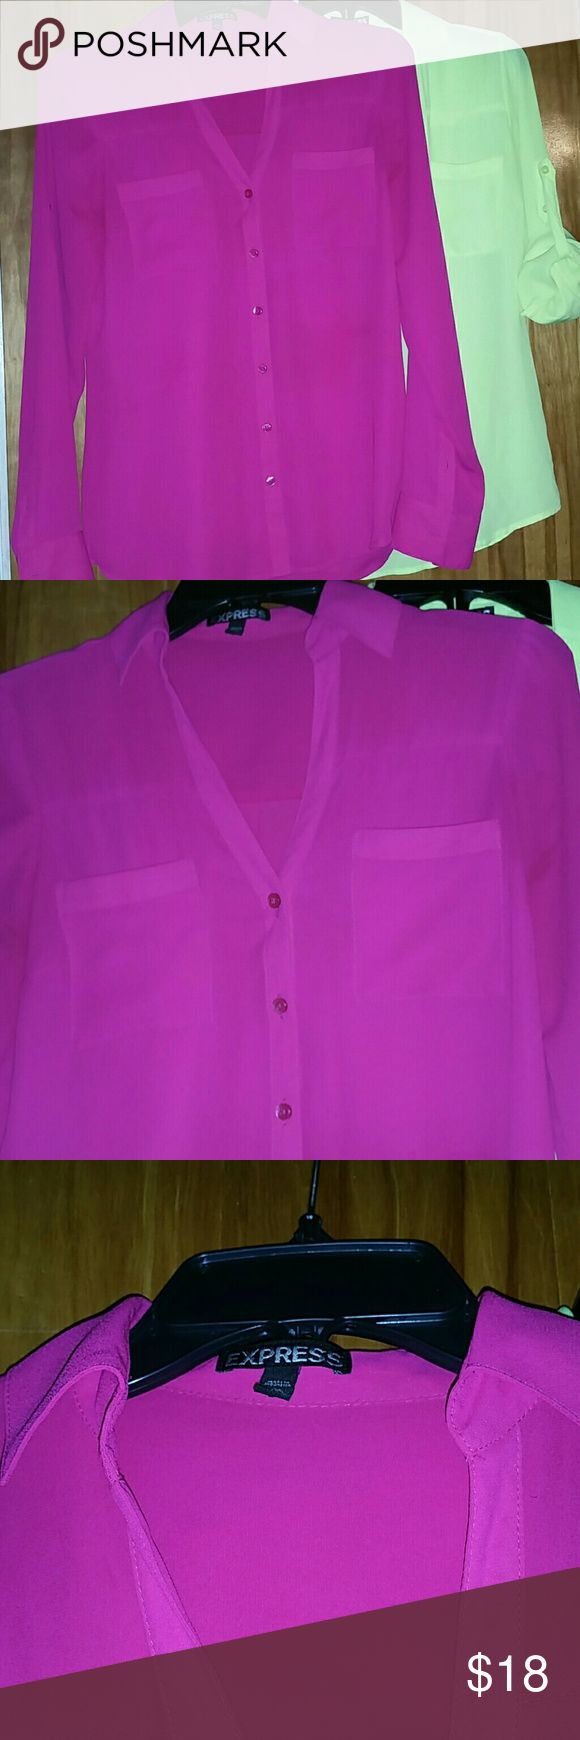 EXPRESS Silky Button Front Top in Hot Pink XS Brand new bright hot pink long sleeve silky top is extremely comfortable and goes with anything. You can shorten the sleeves like the other neon yellow top with taps and tie the front with jeans looks adorable. Purchased both because I love the colors, happy to bundle both shirts for discount. Both are brand new without tags from Express in the Barboursville Mall. Express Tops Button Down Shirts